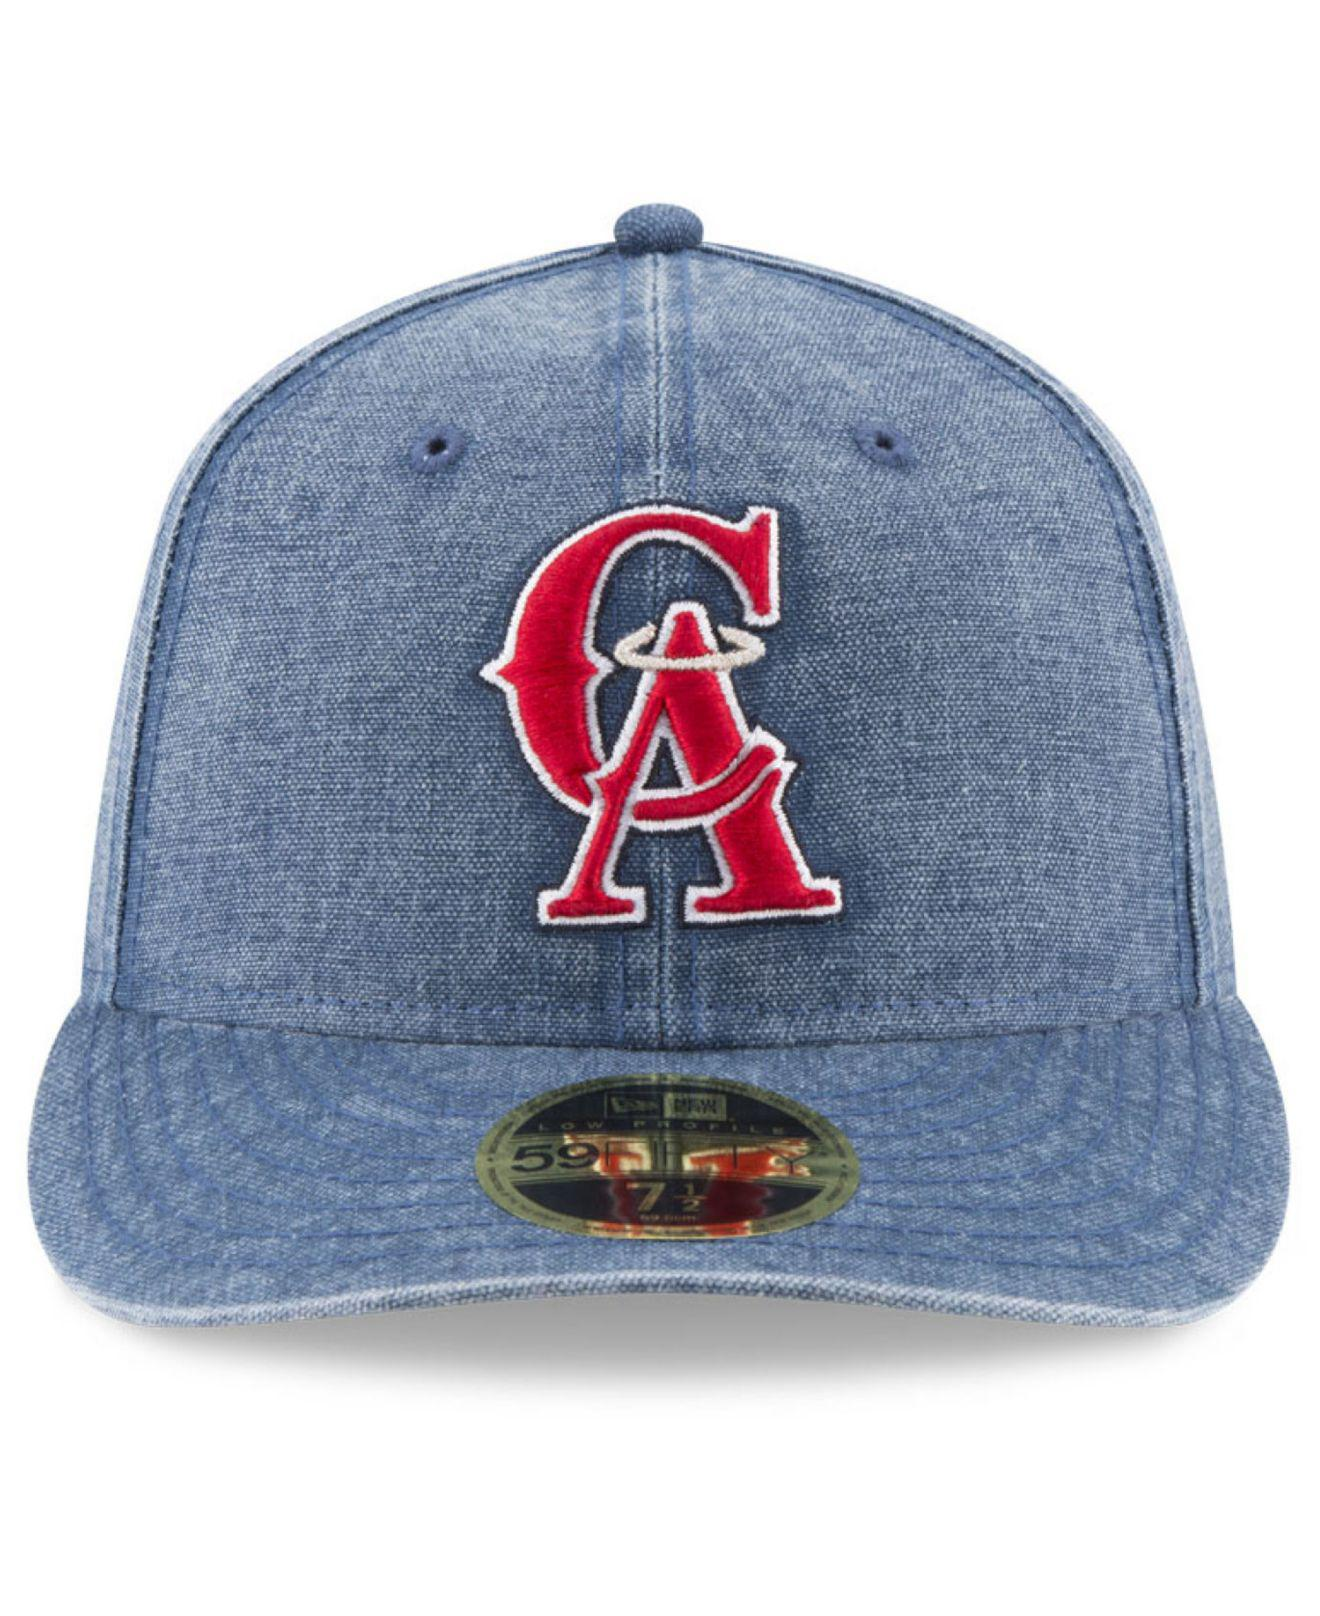 quality design c8c45 f2fe9 ... coupon lyst ktz los angeles angels 59fifty bro cap in blue for men  84c04 eff68